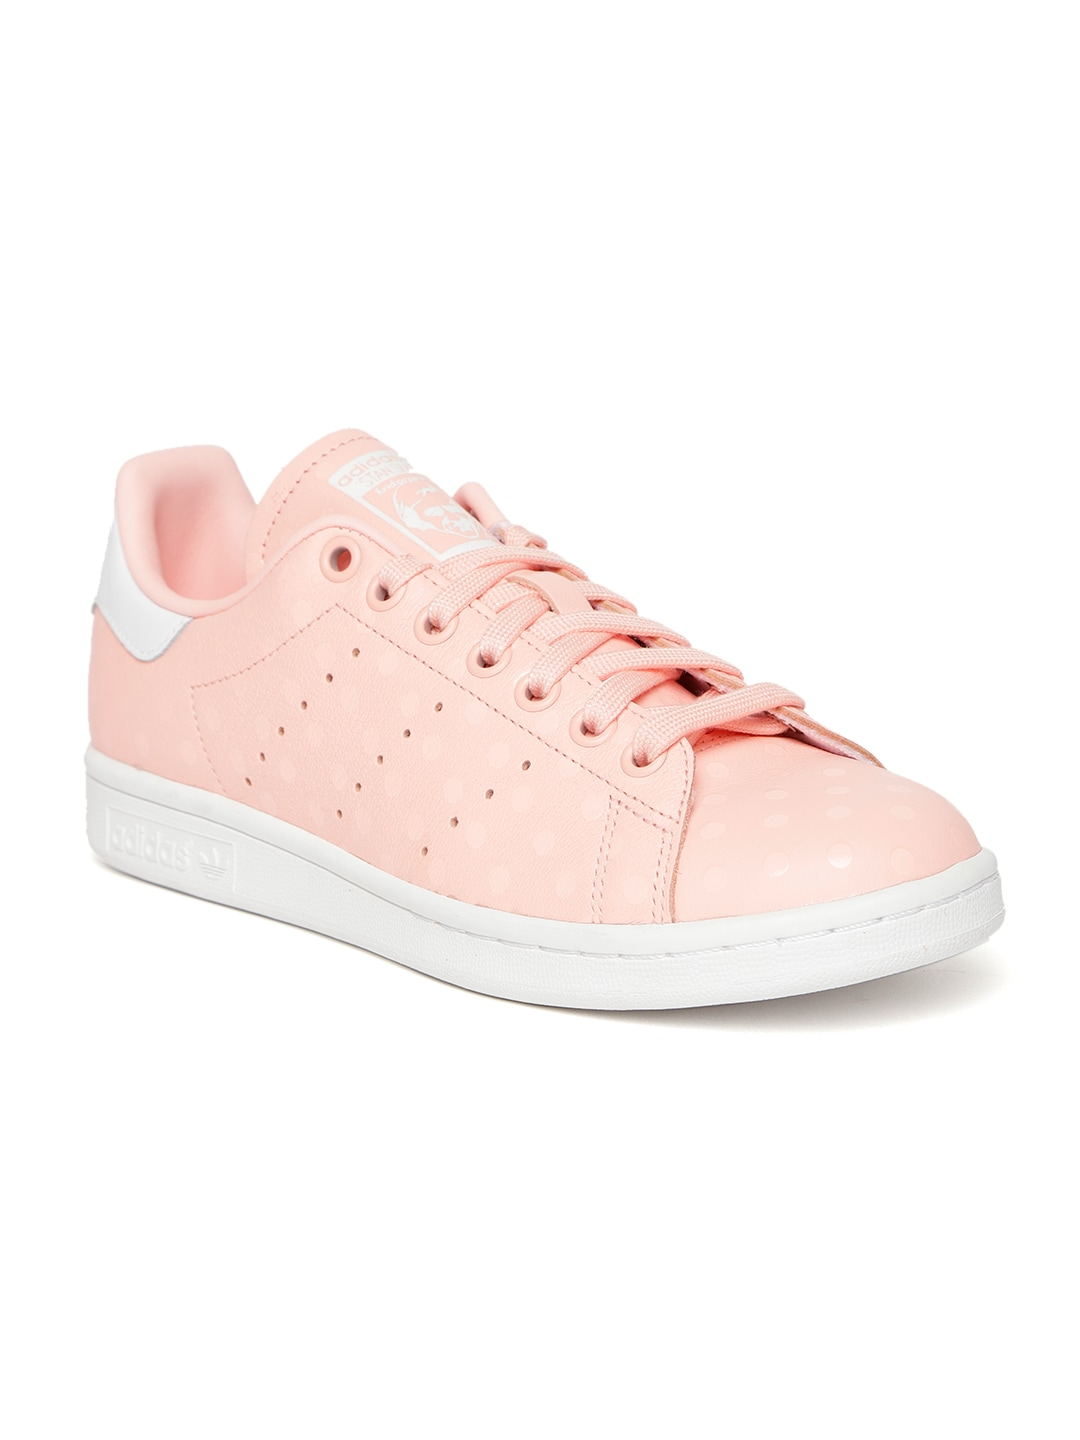 best service cef38 e6428 Adidas Originals Women Pink Stan Smith Leather Sneakers